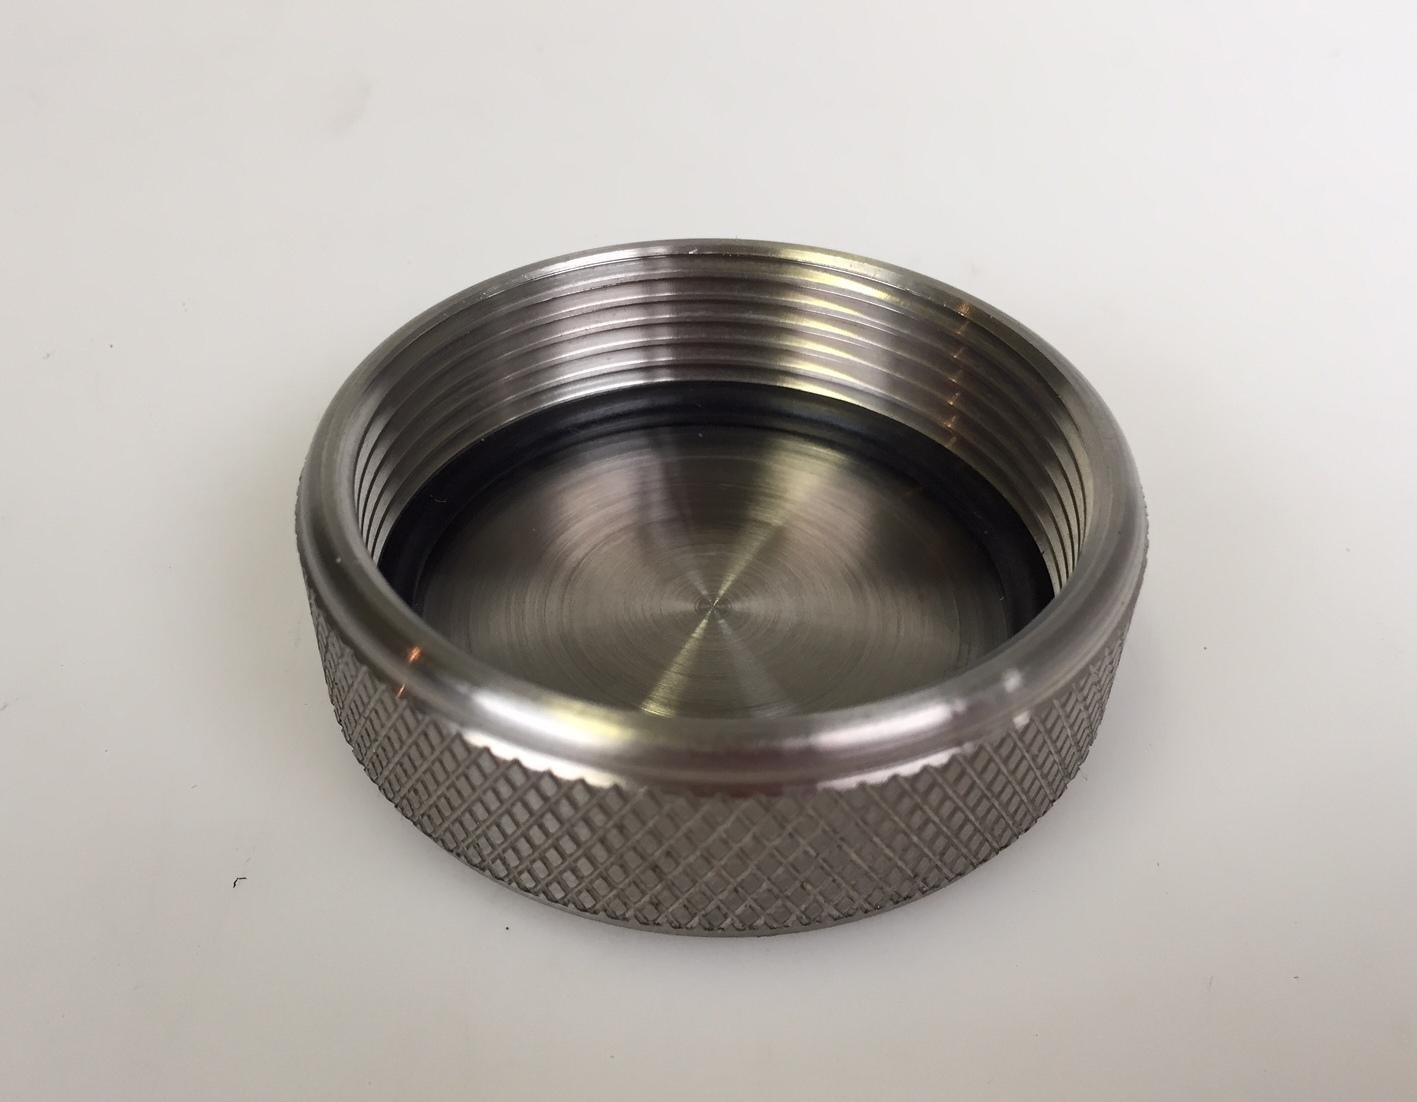 Knurled Stainless Steel Tank Cap Complete With Seal